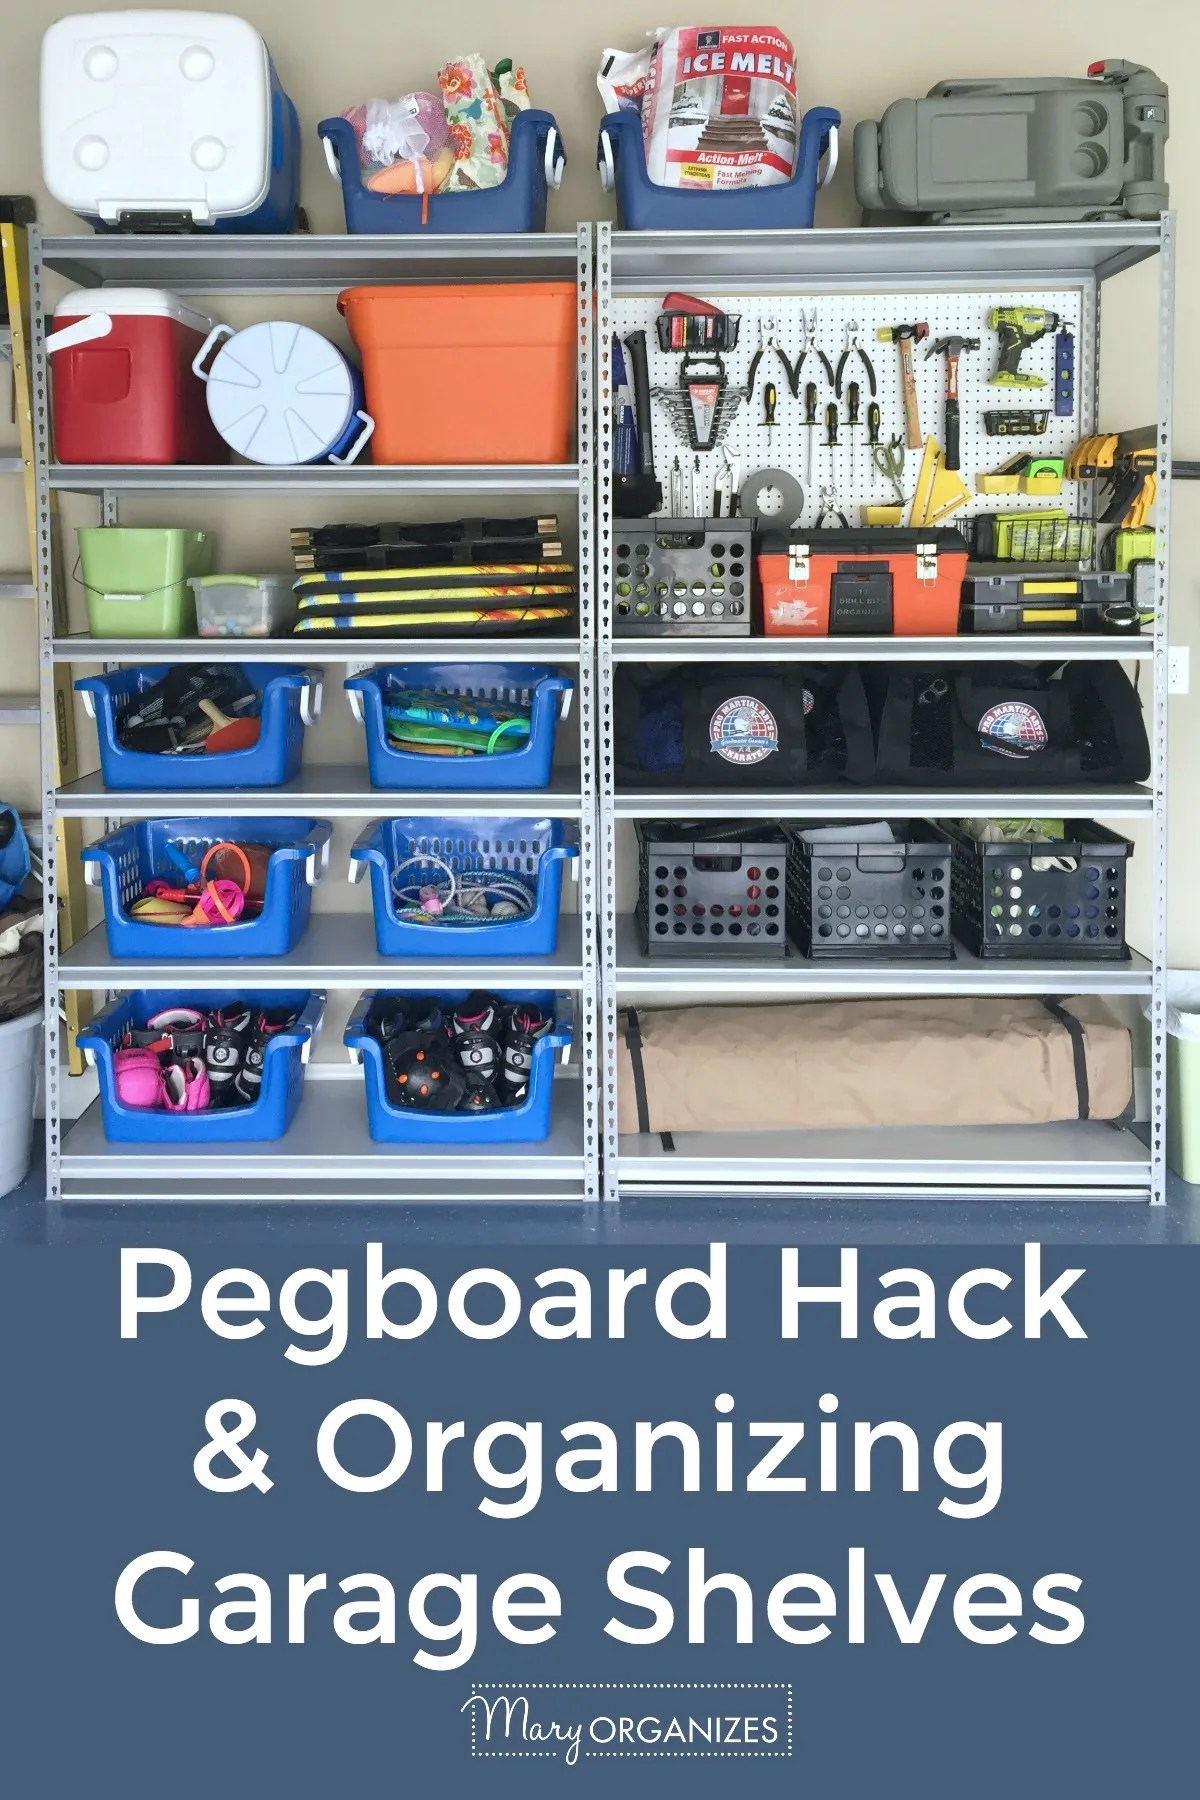 Pegboard Hack and Organizing Garage Shelves -v